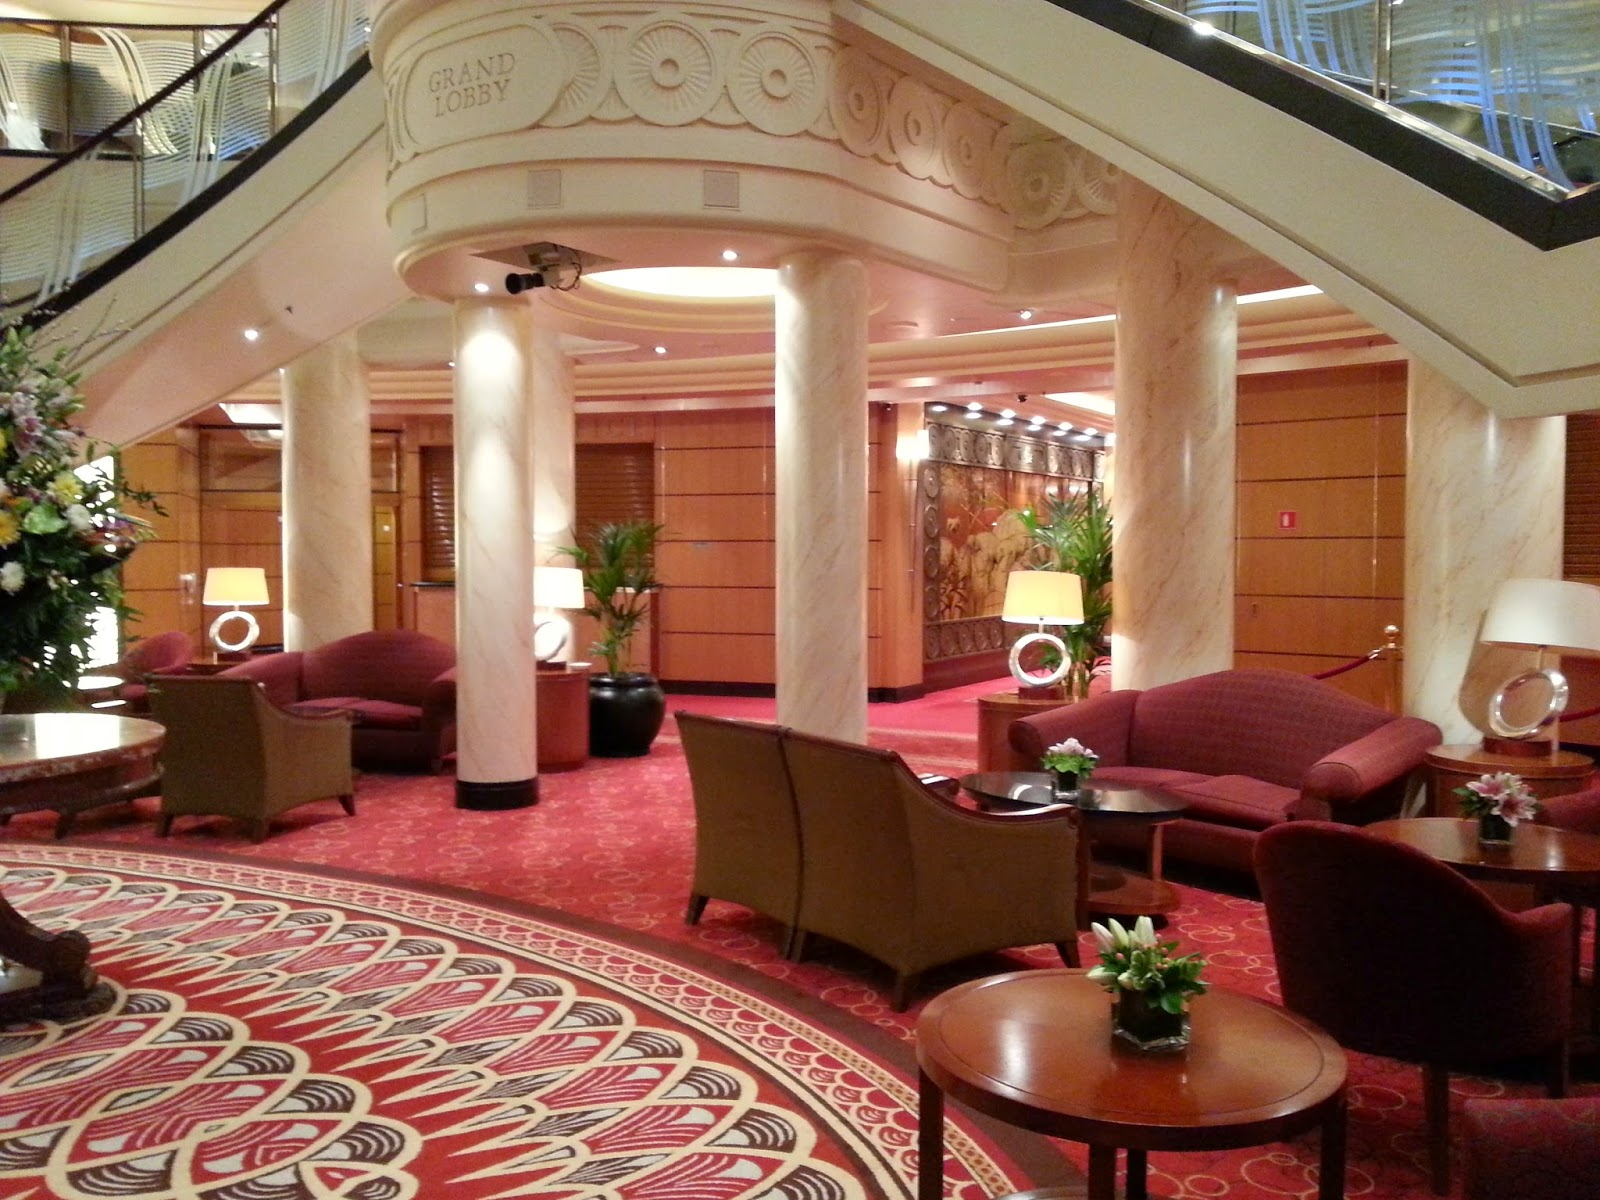 Queen Mary 2 (QM2) - Grand Lobby and Mayfair Shops